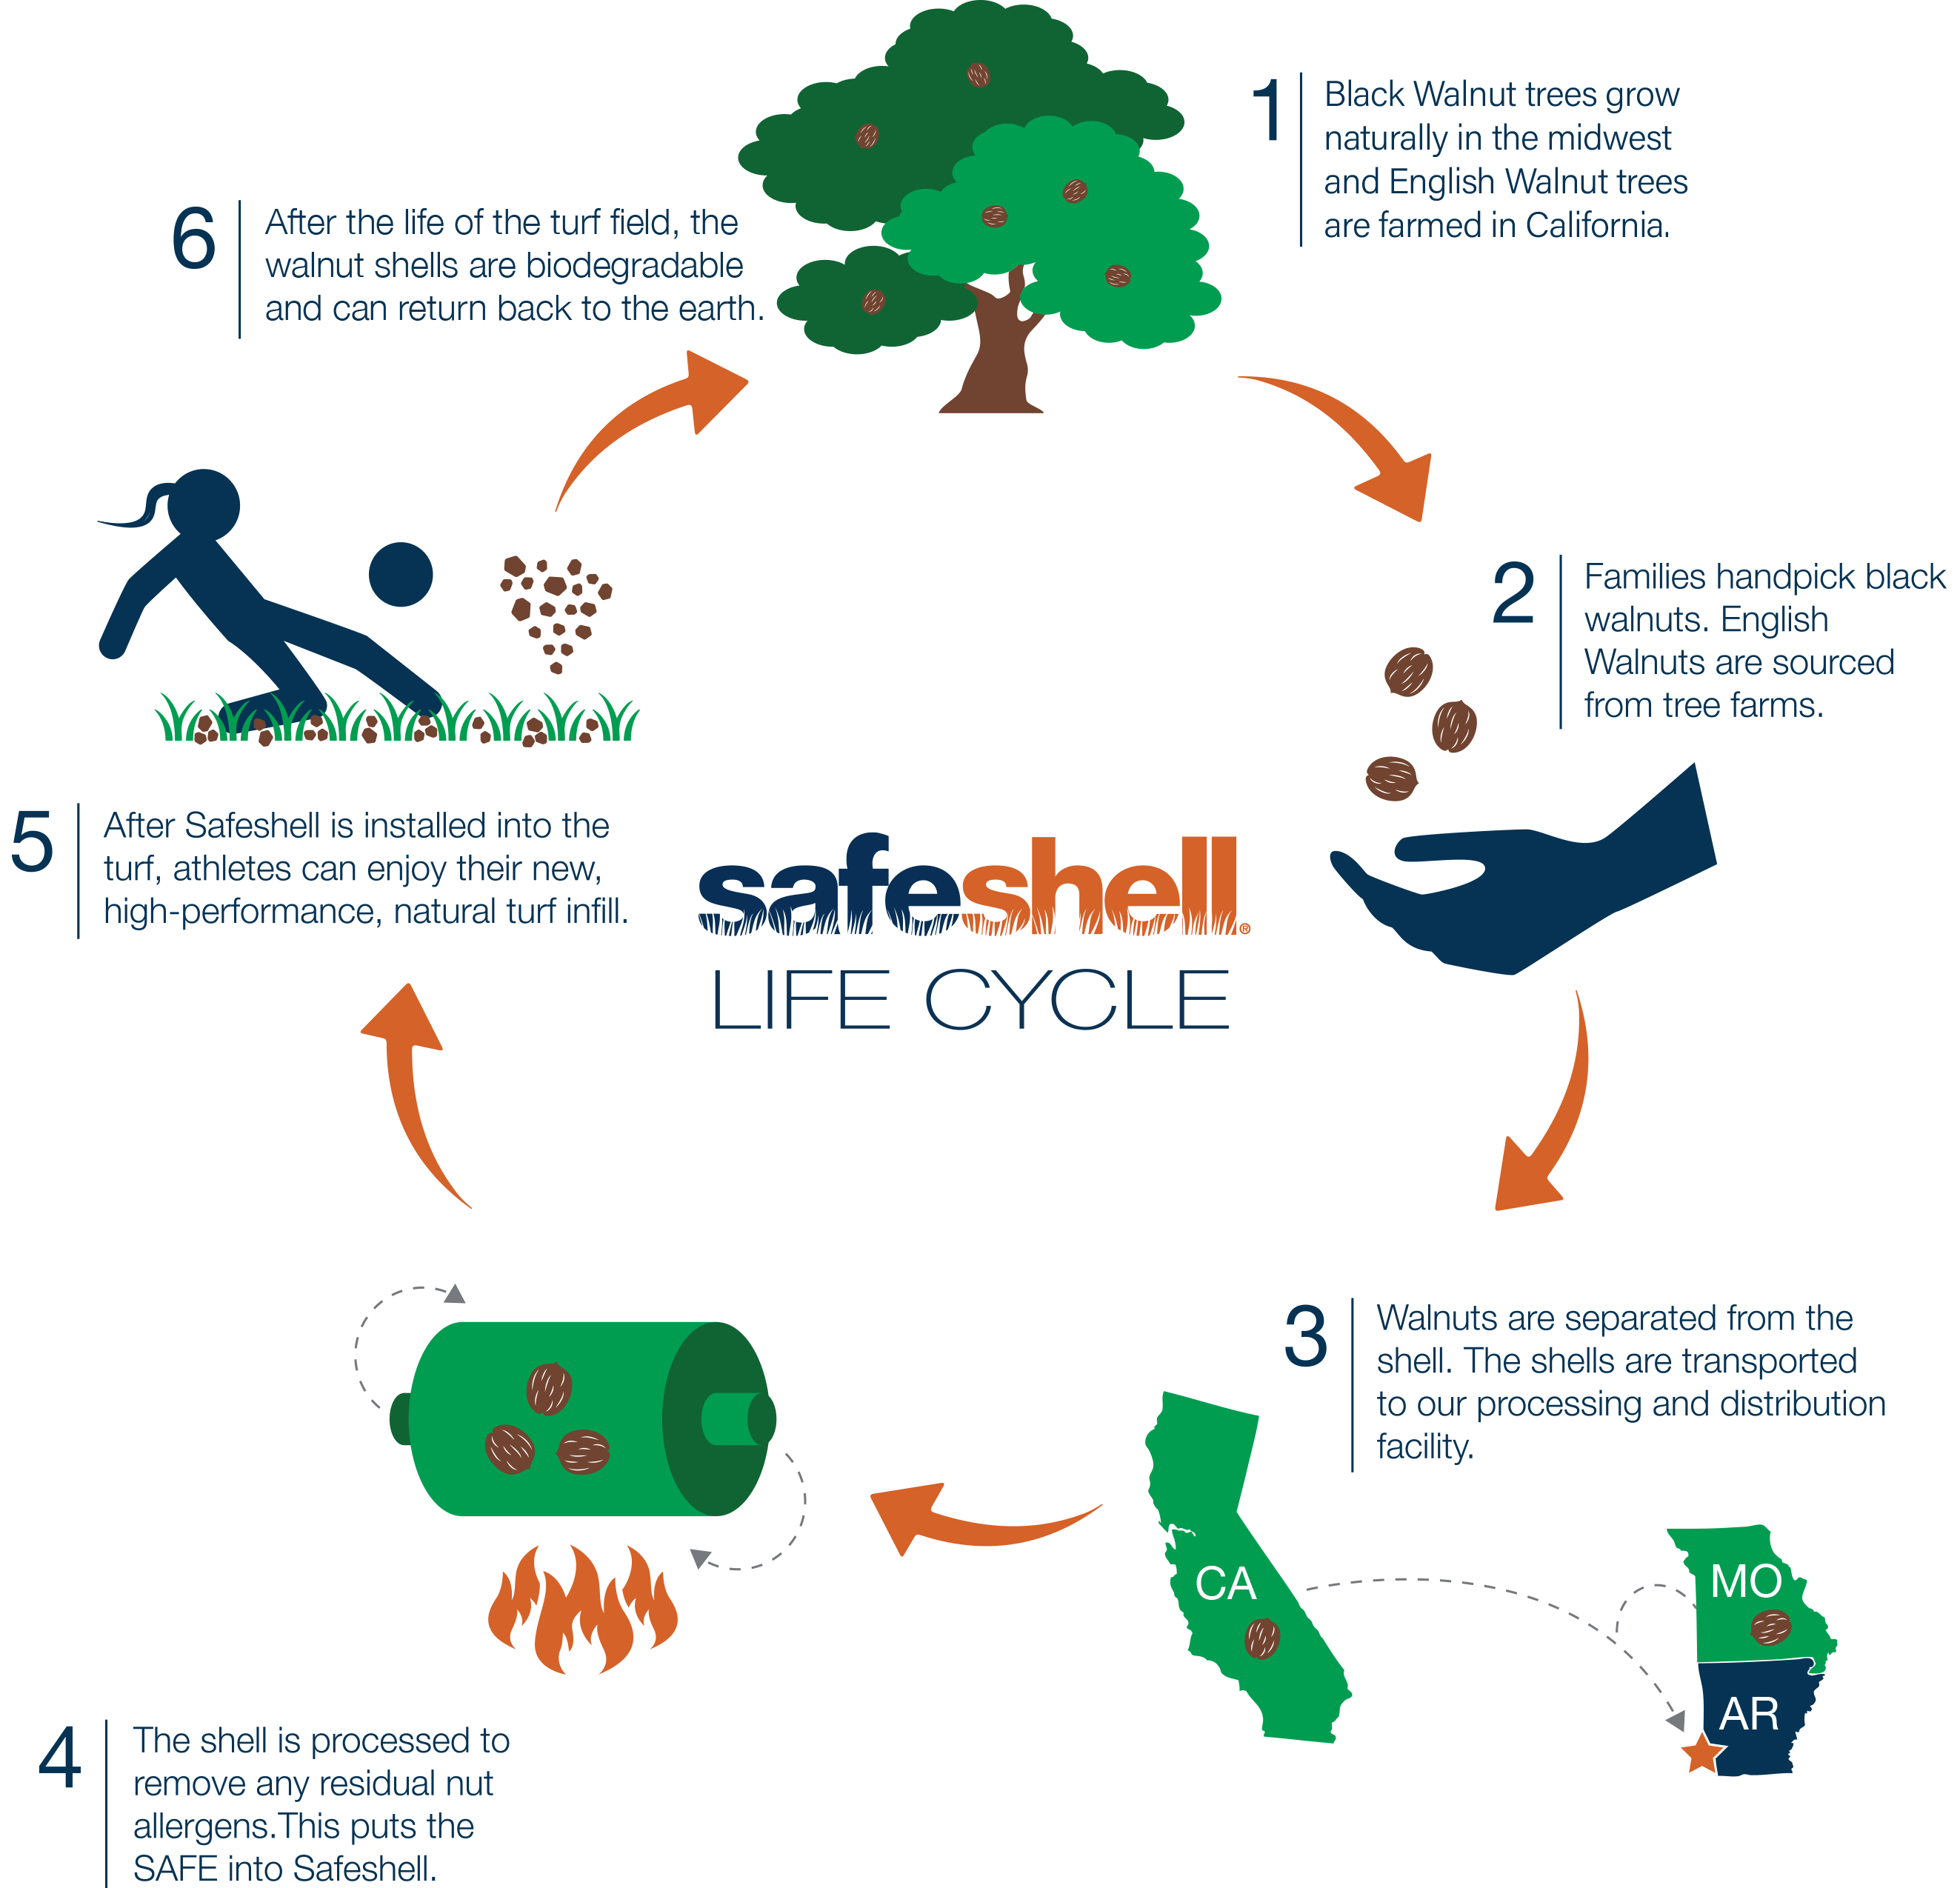 Safeshell infographic